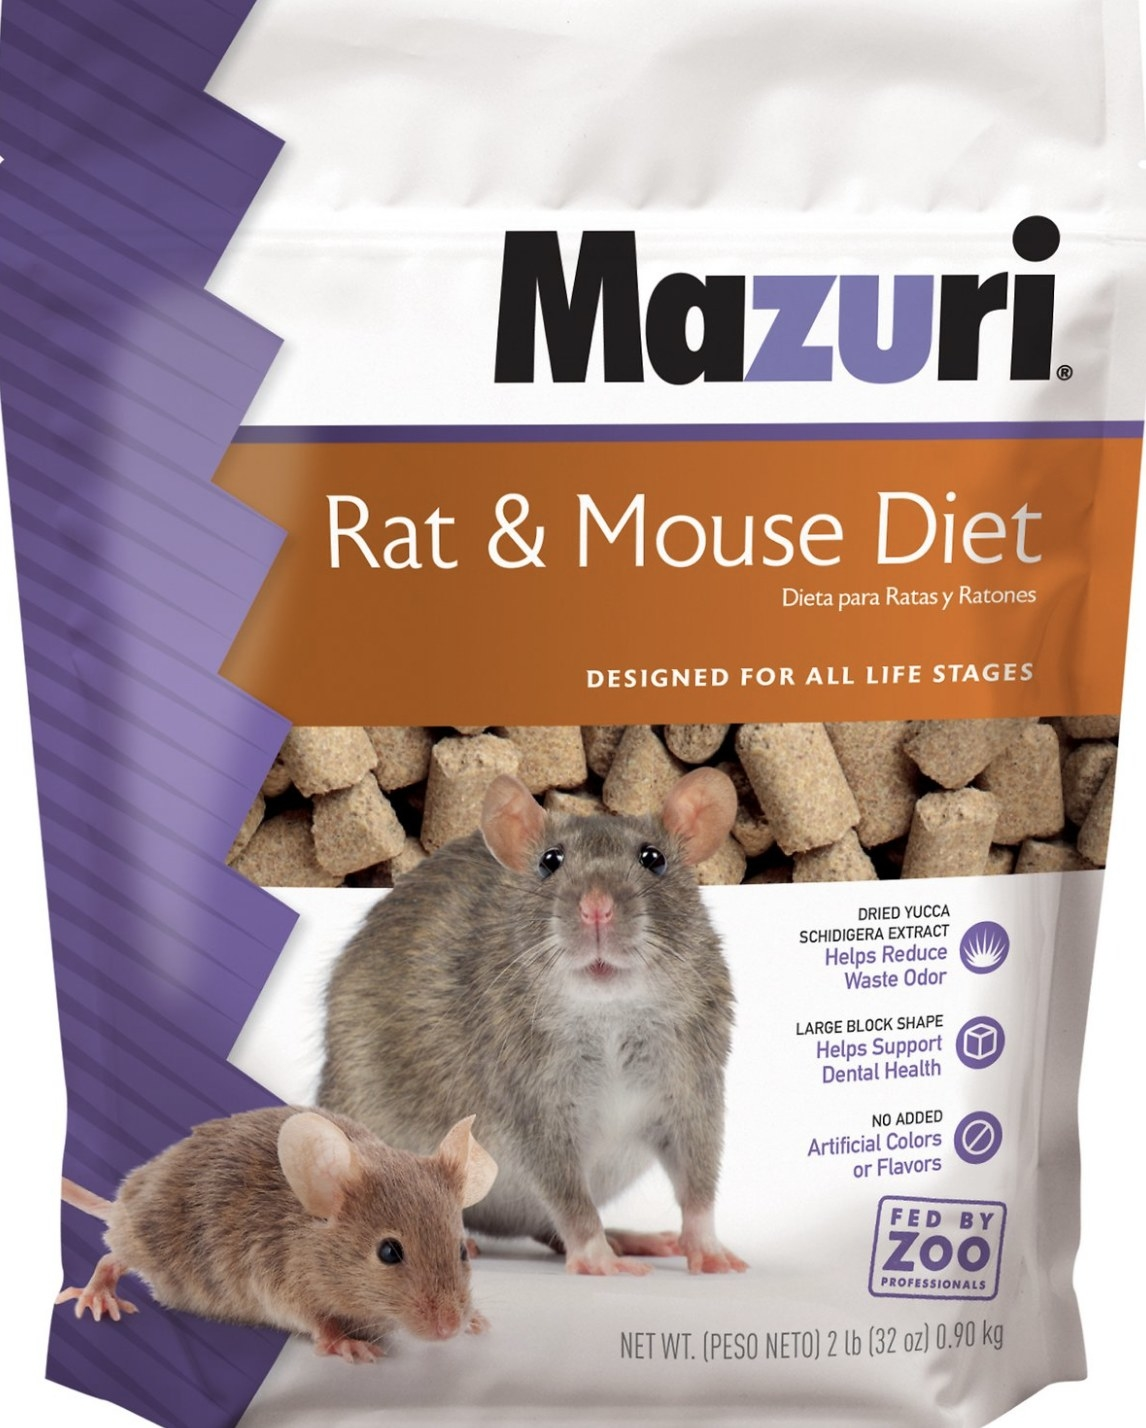 The bag of mouse and rat food